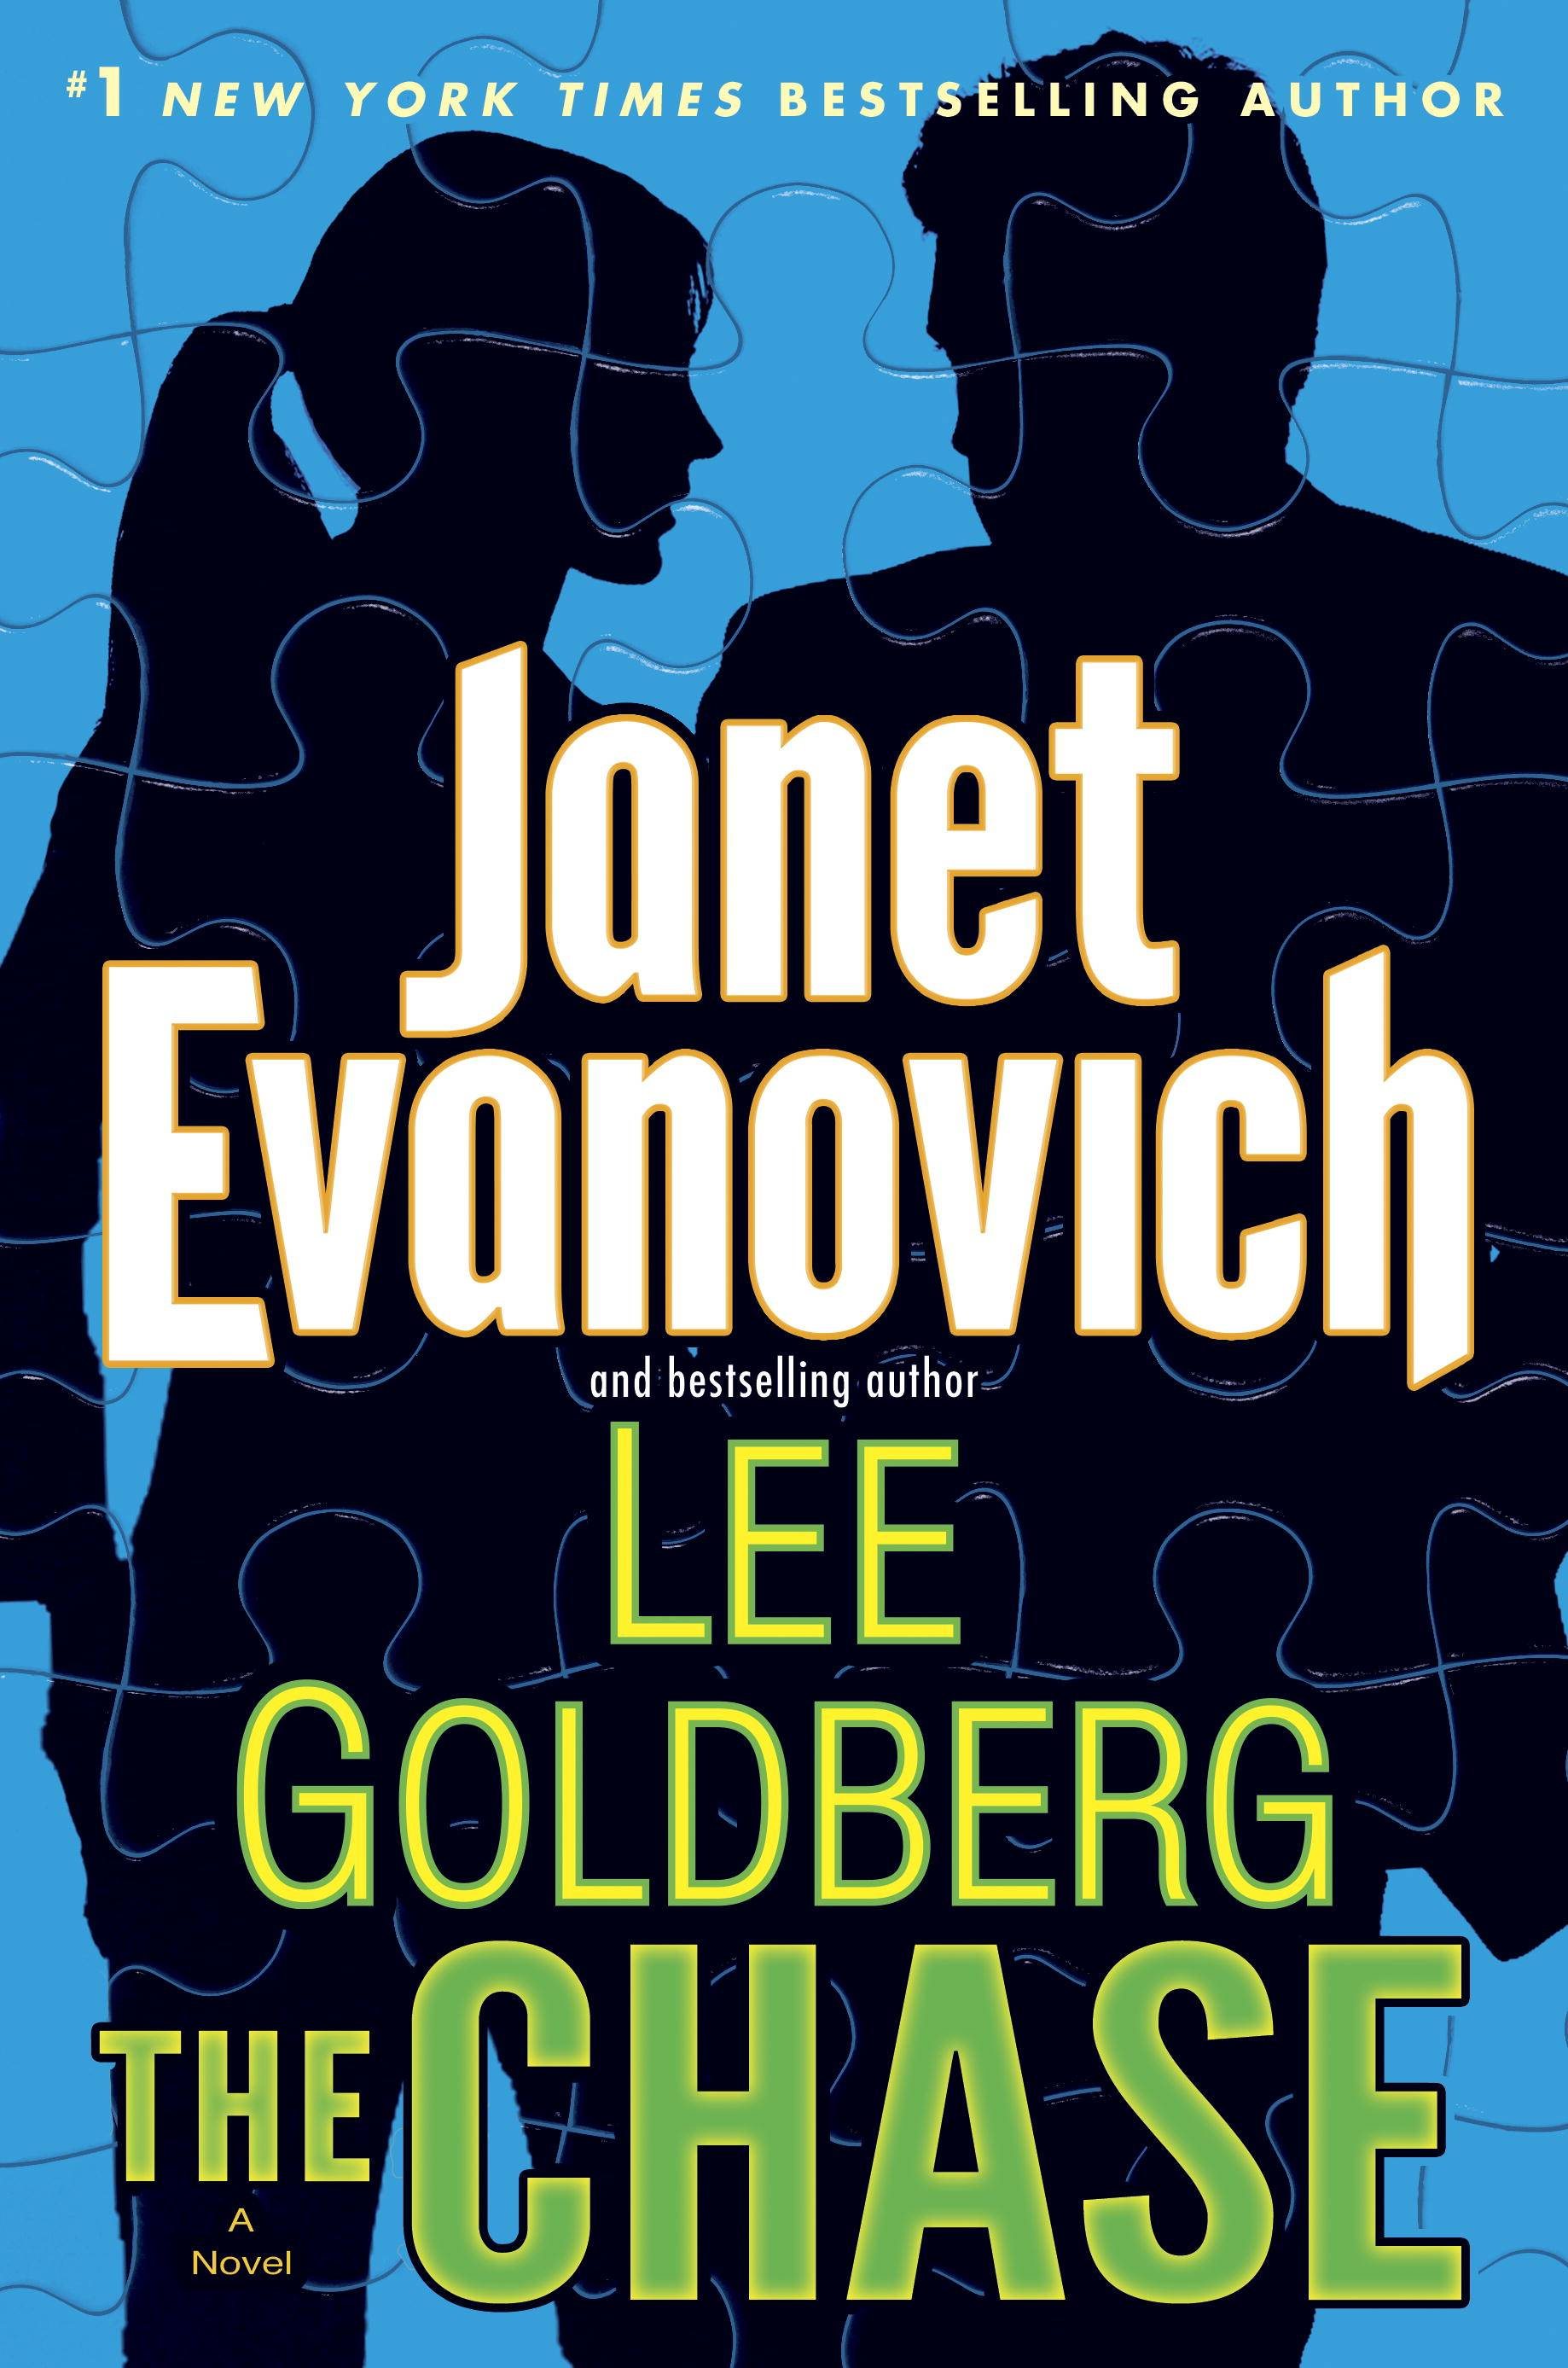 """The Chase"" by Janet Evanovich and Lee Goldberg is a fast-paced follow-up to ""The Heist."""